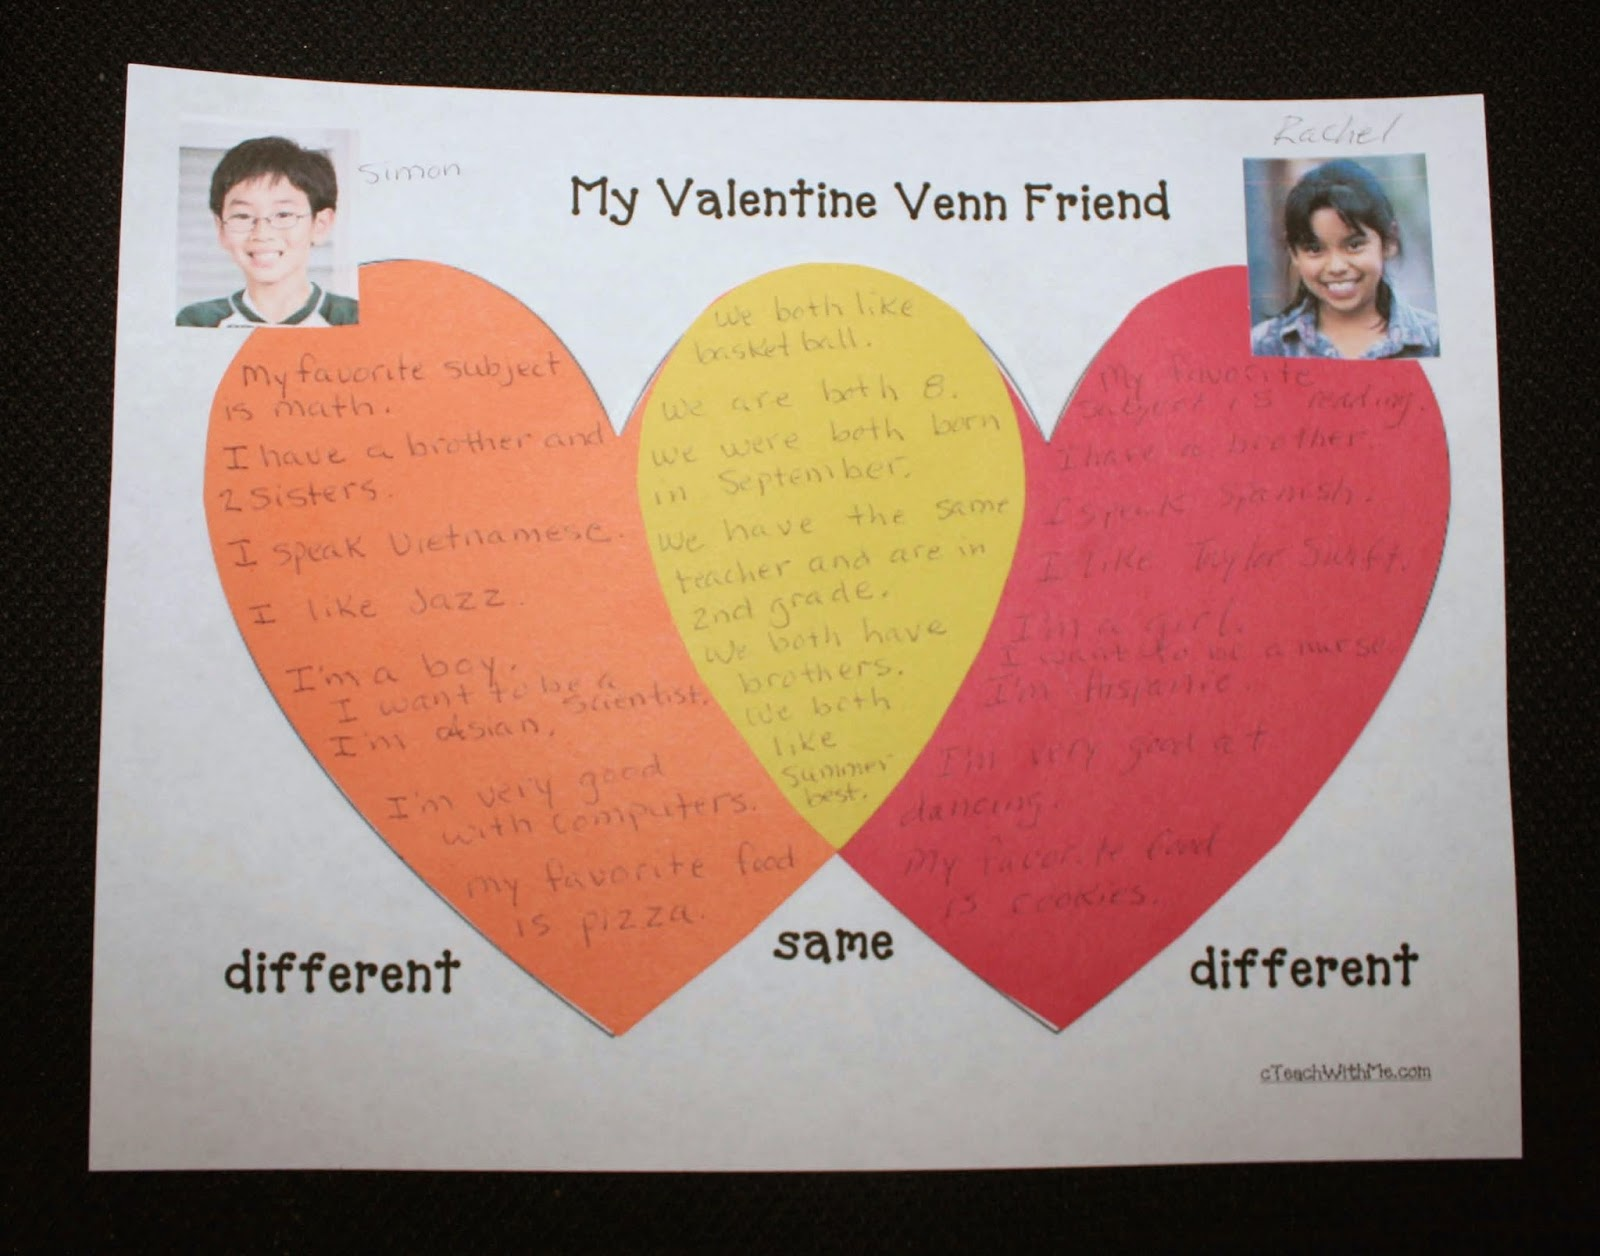 Classroom freebies valentine venn friends for Heart shaped bulletin board